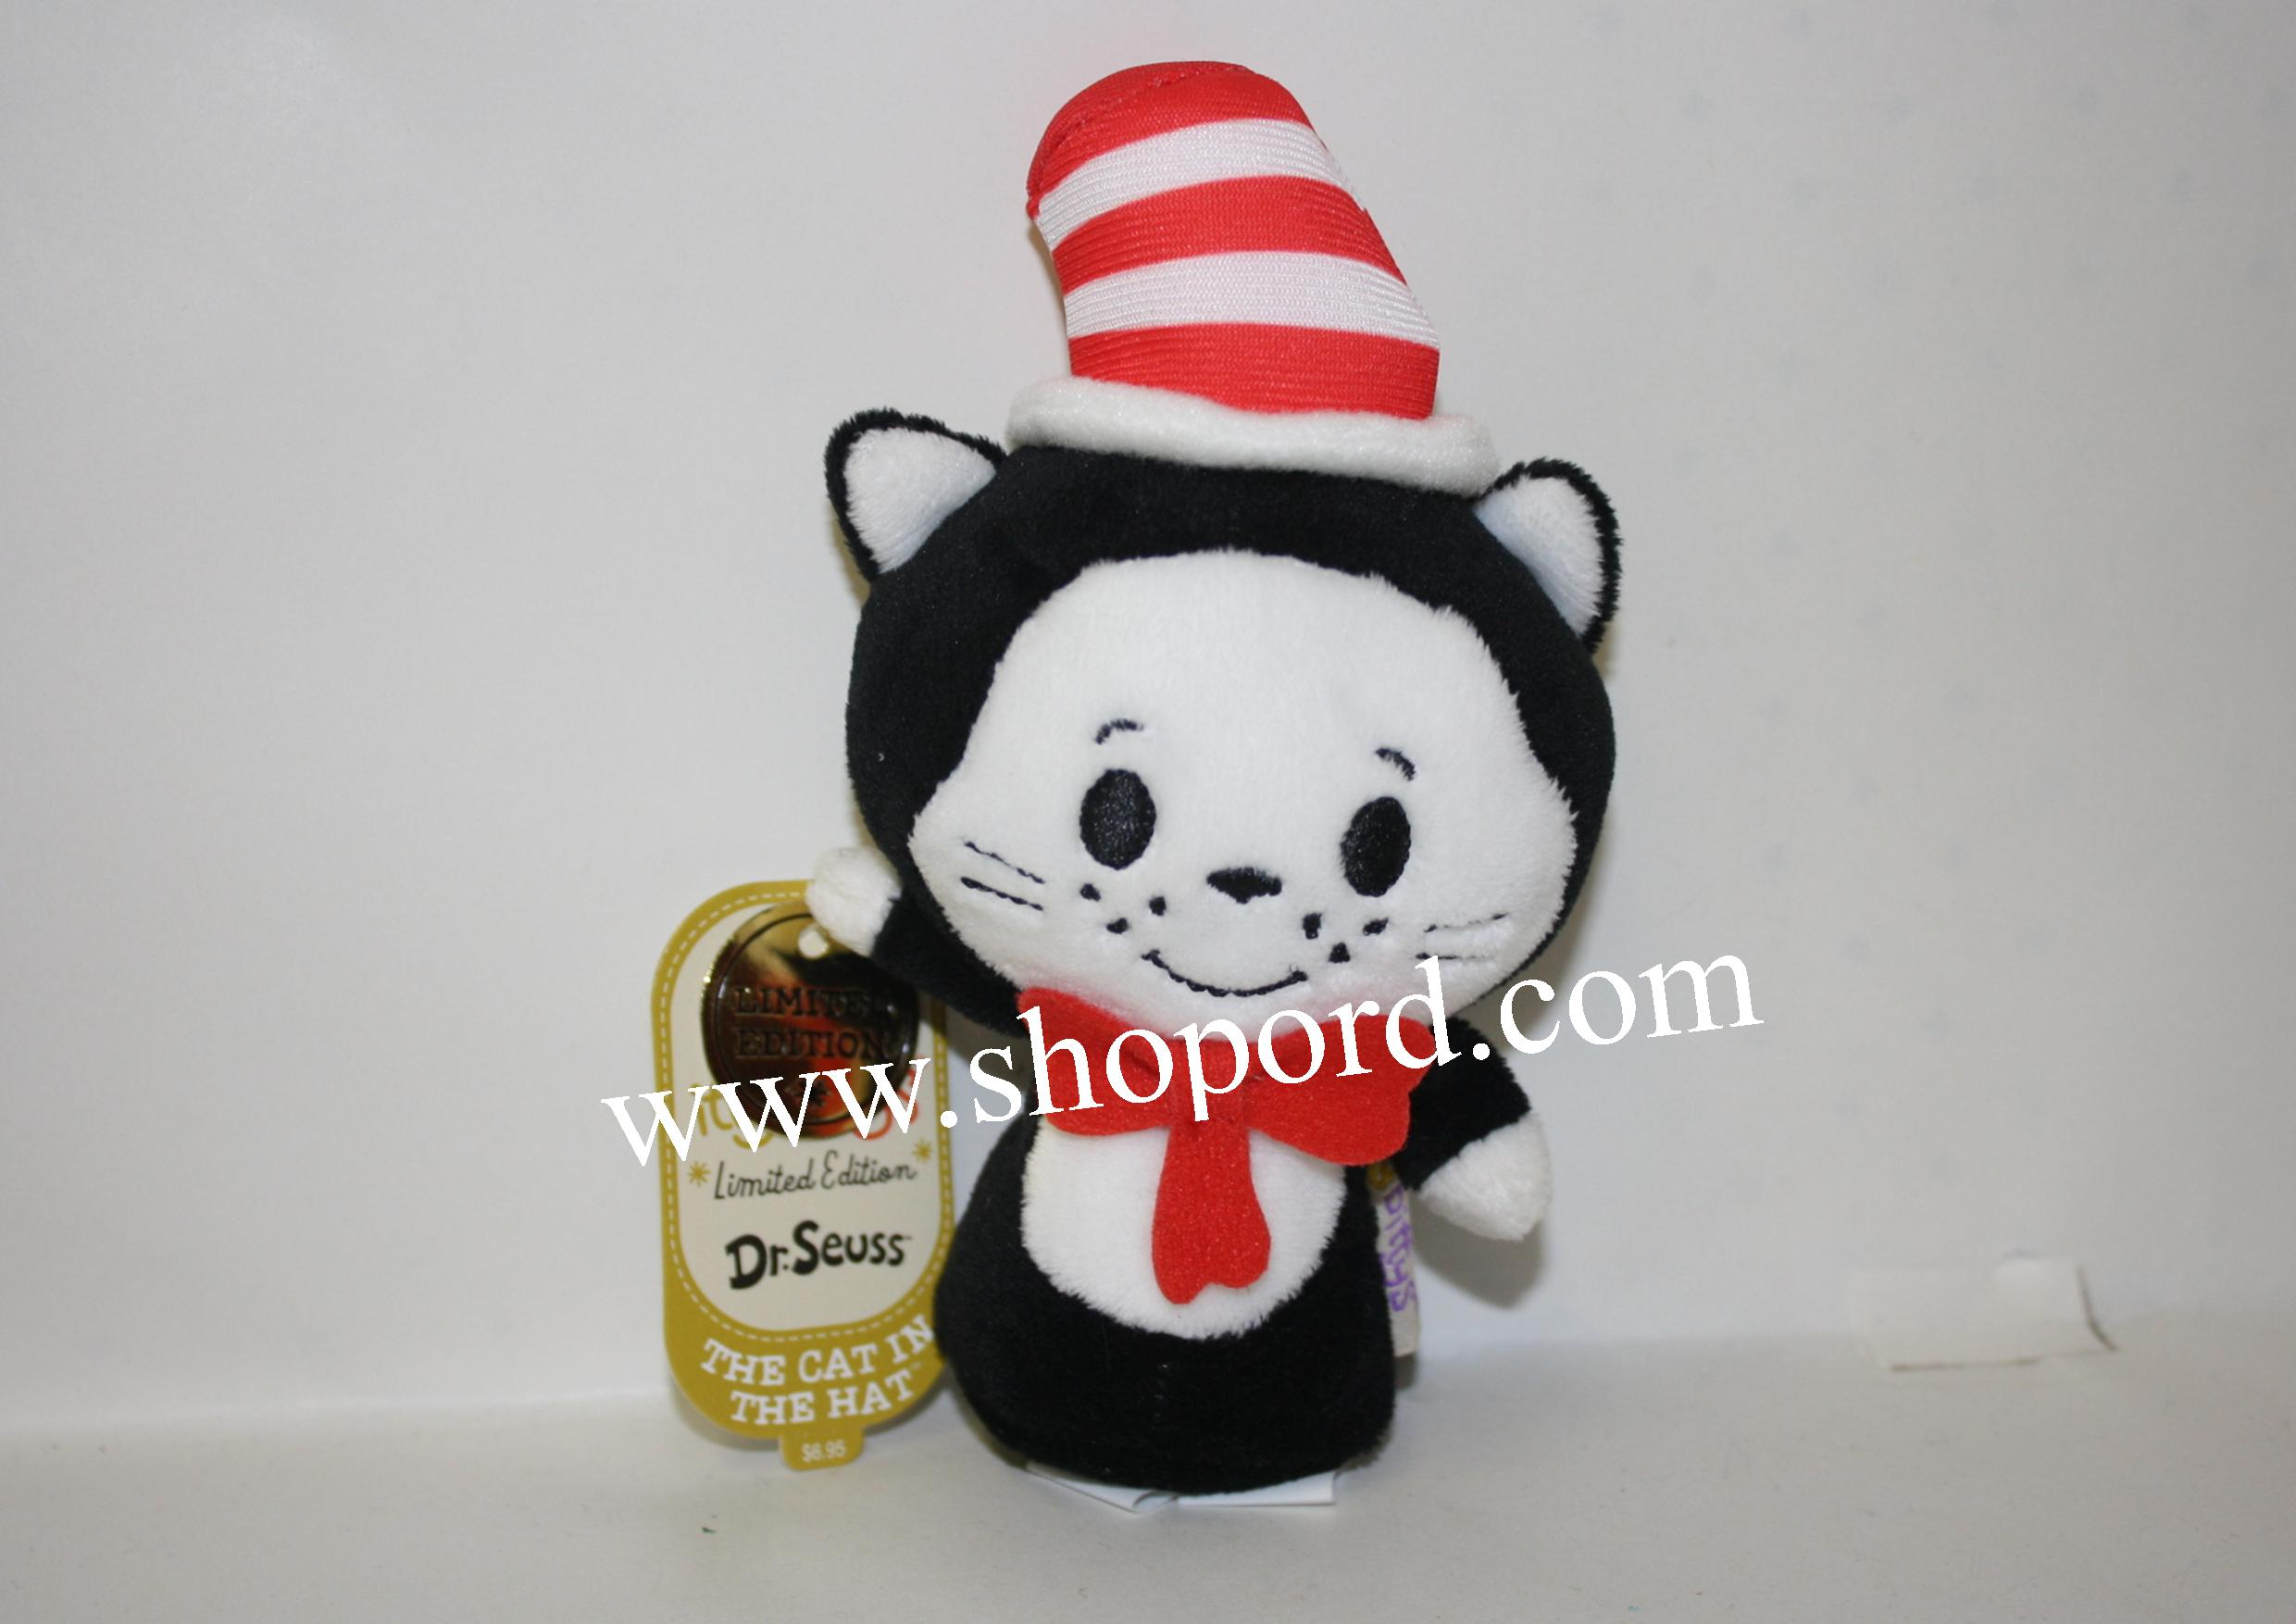 Hallmark Itty Bitty Dr Seuss The Cat In The Hat Limited Edition